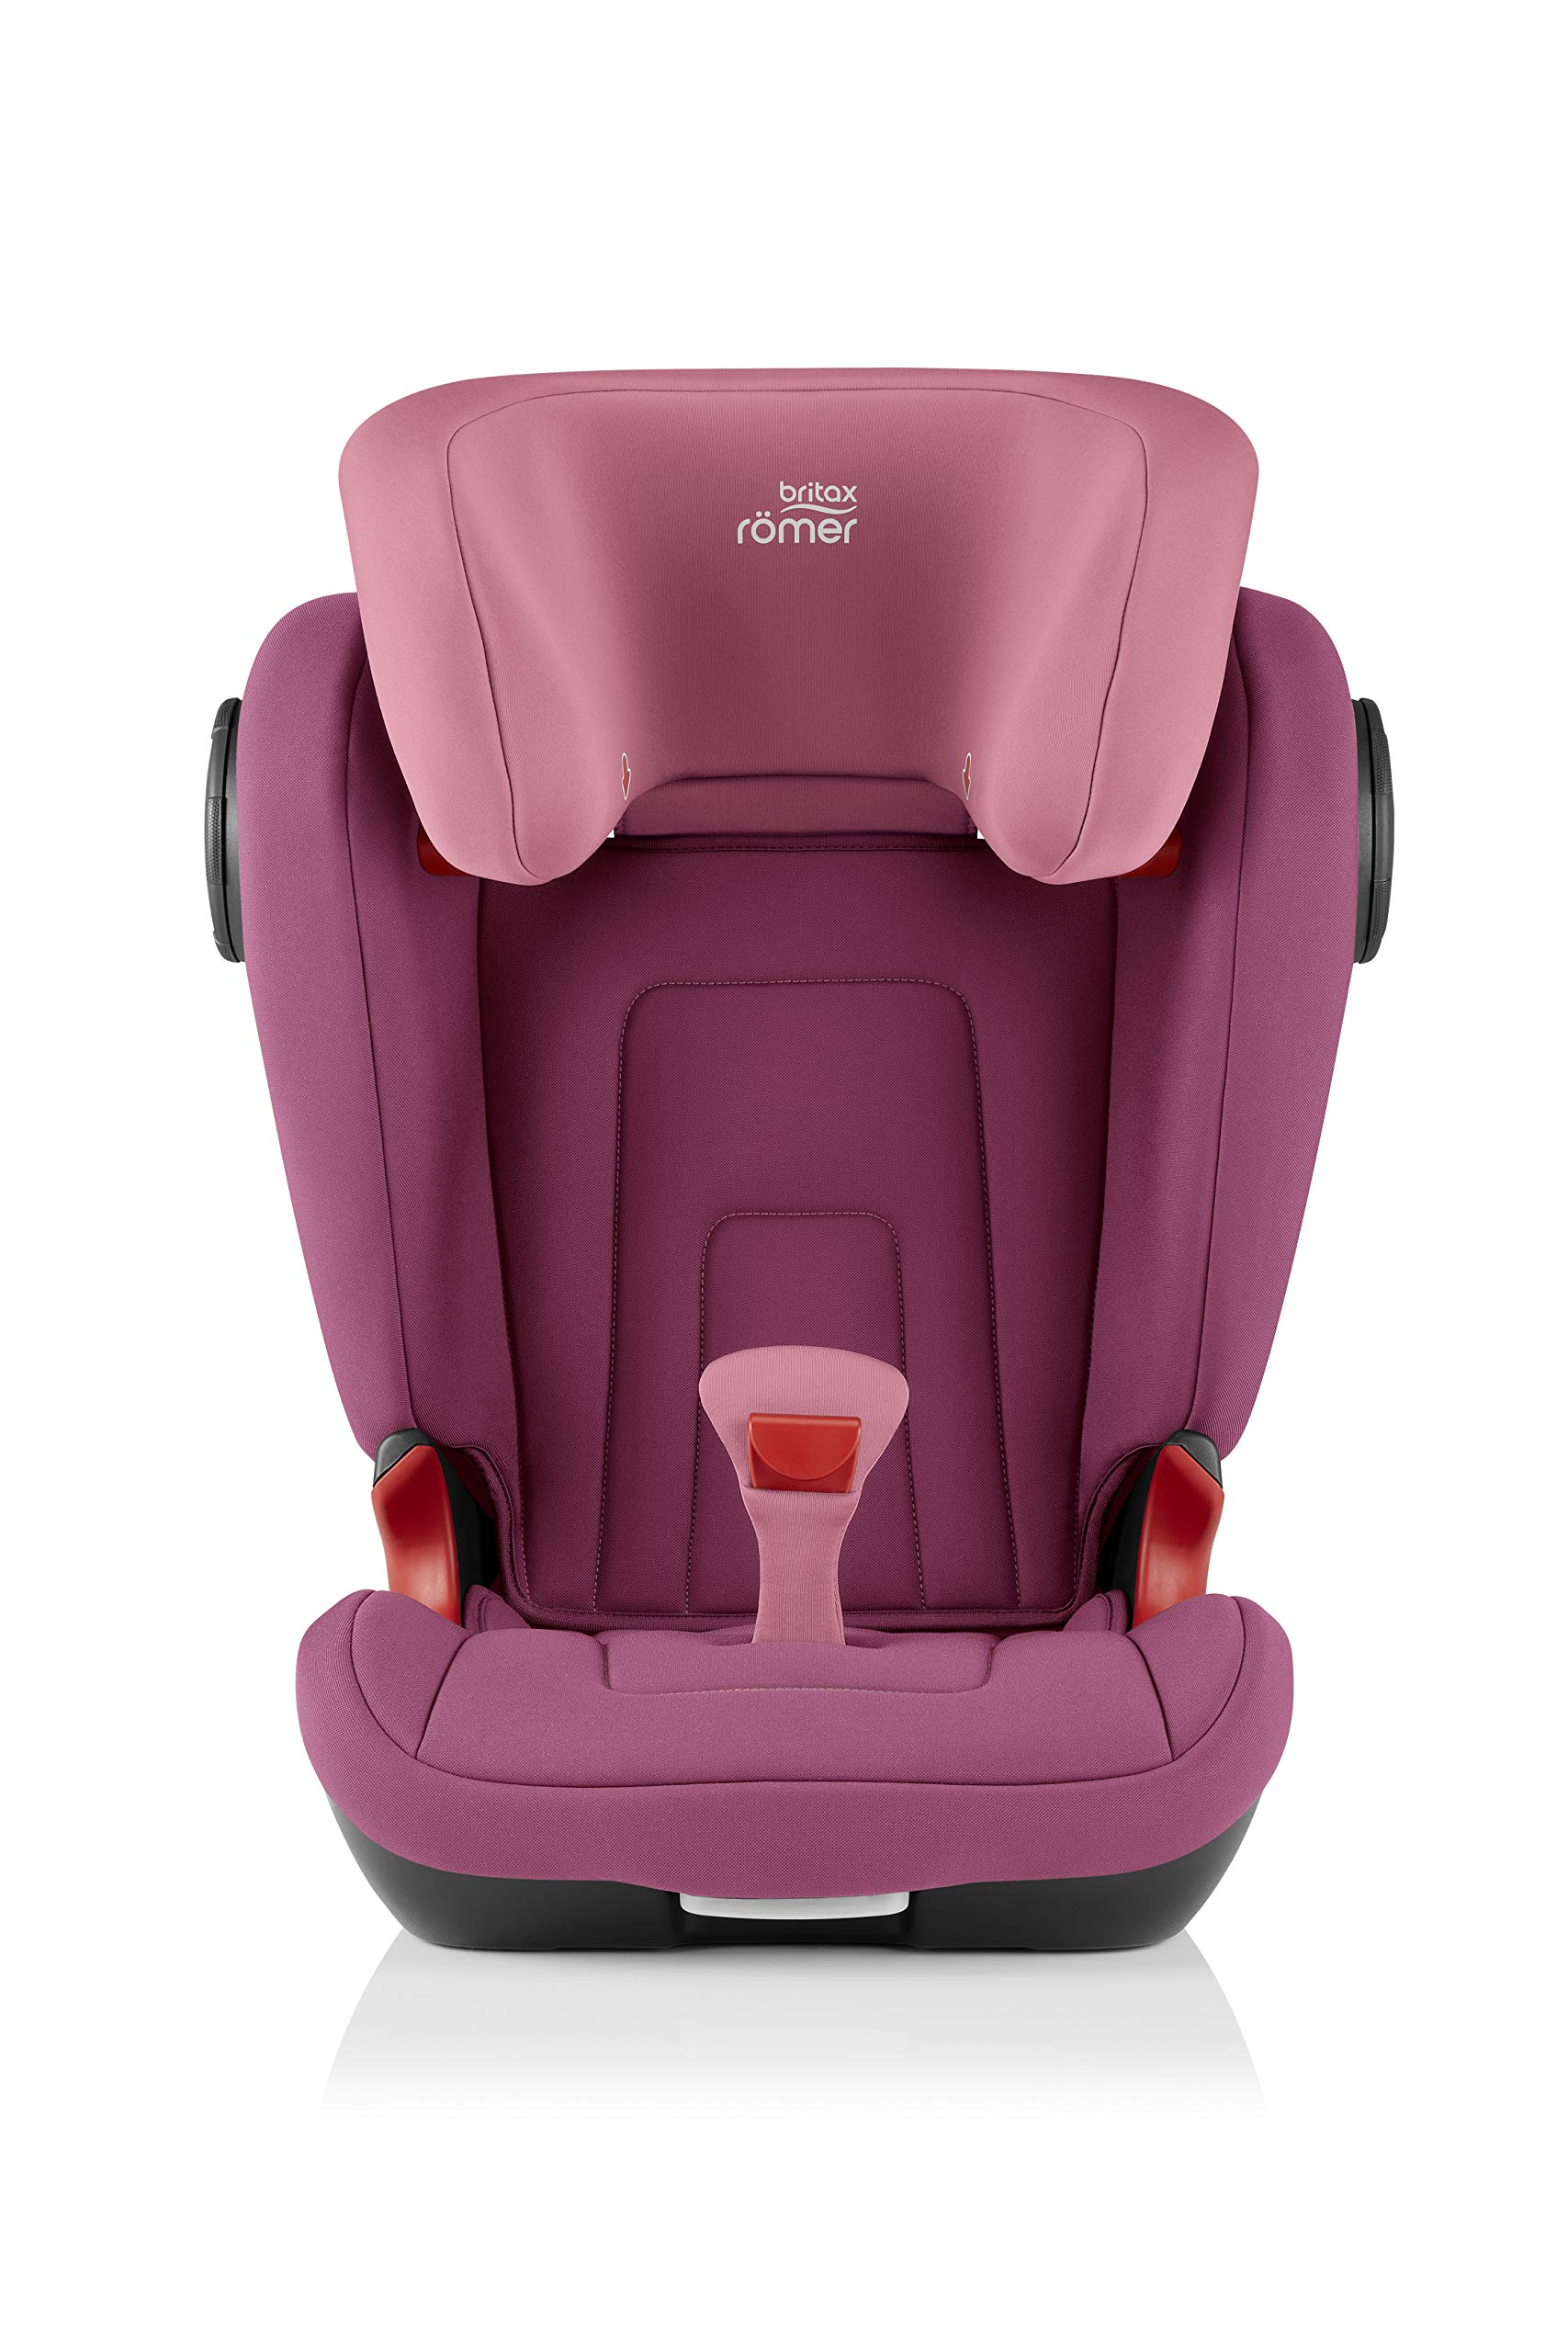 Britax Römer KIDFIX² S Group 2-3 (15-36kg) Car Seat - Wine Rose  Advanced side impact protection - sict offers superior protection to your child in the event of a side collision. reducing impact forces by minimising the distance between the car and the car seat. Secure guard - helps to protect your child's delicate abdominal area by adding an extra - a 4th - contact point to the 3-point seat belt. High back booster - protects your child in 3 ways: provides head to hip protection; belt guides provide correct positioning of the seat belt and the padded headrest provides safety and comfort. 2